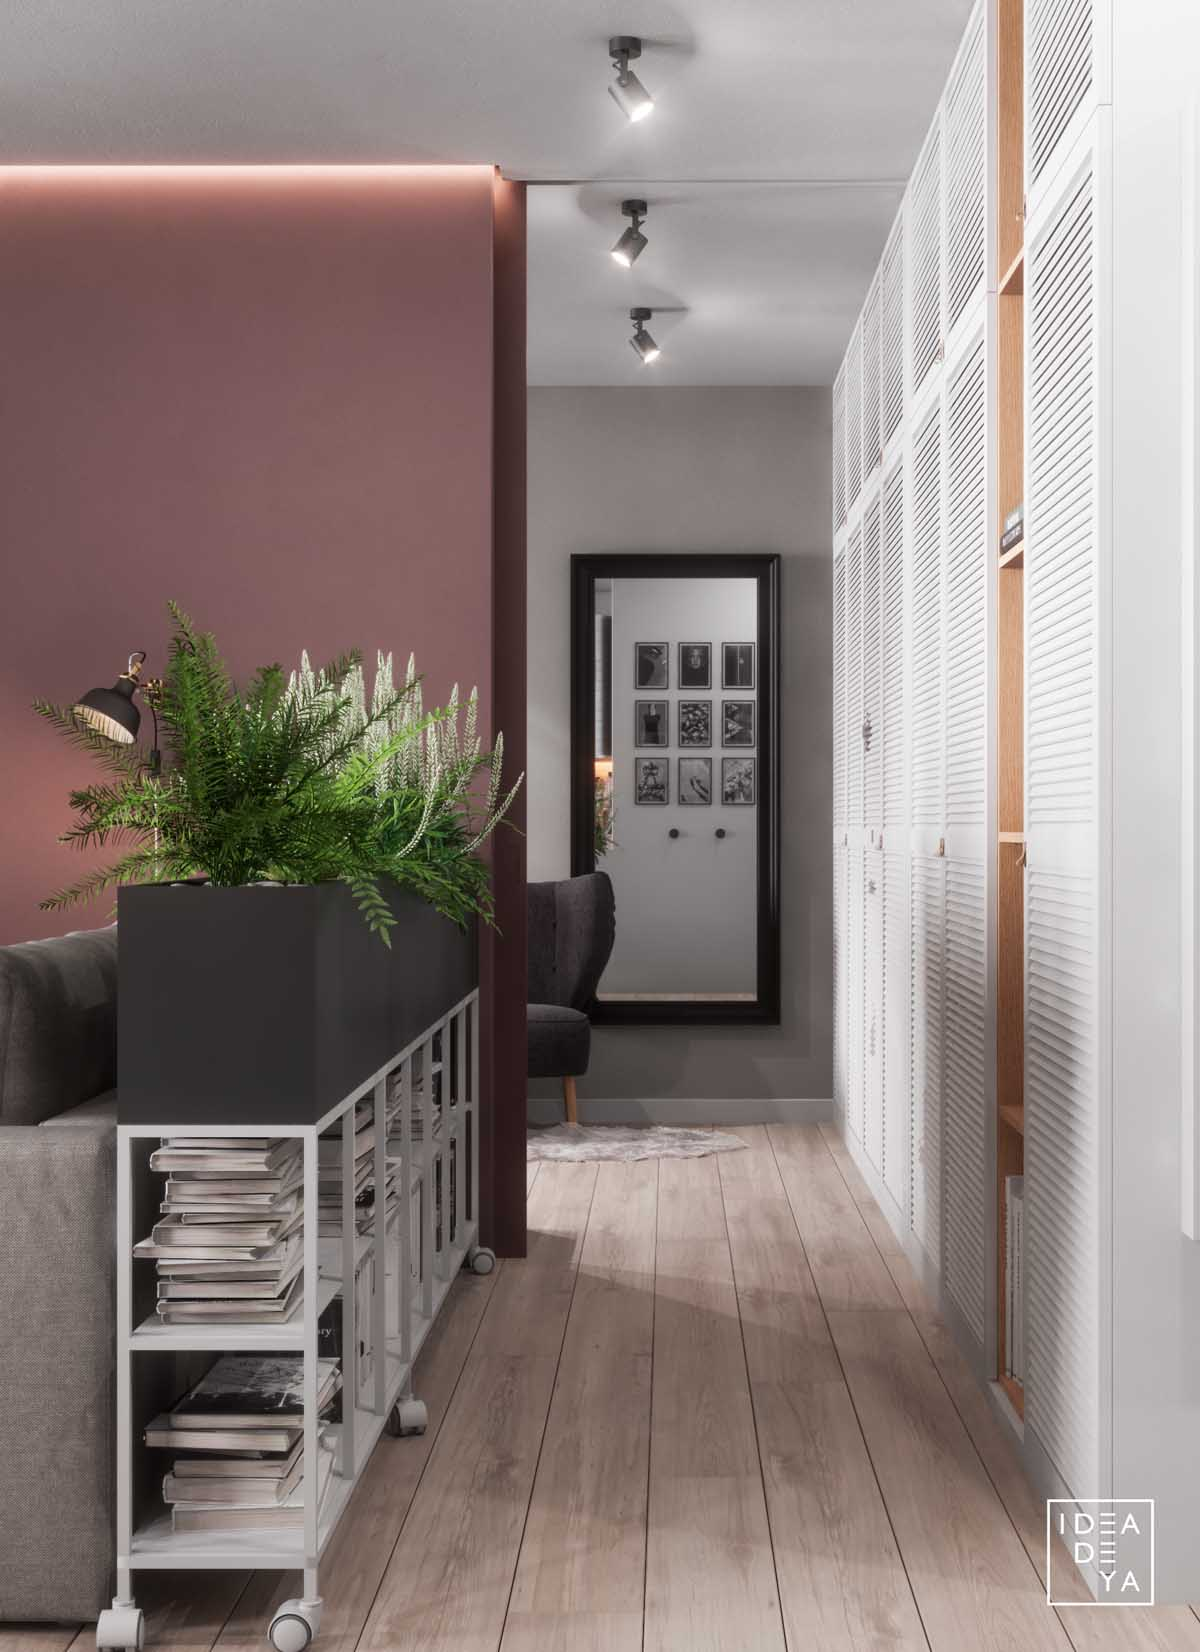 3 Modern Small Apartment Designs Under 50 Square Meters